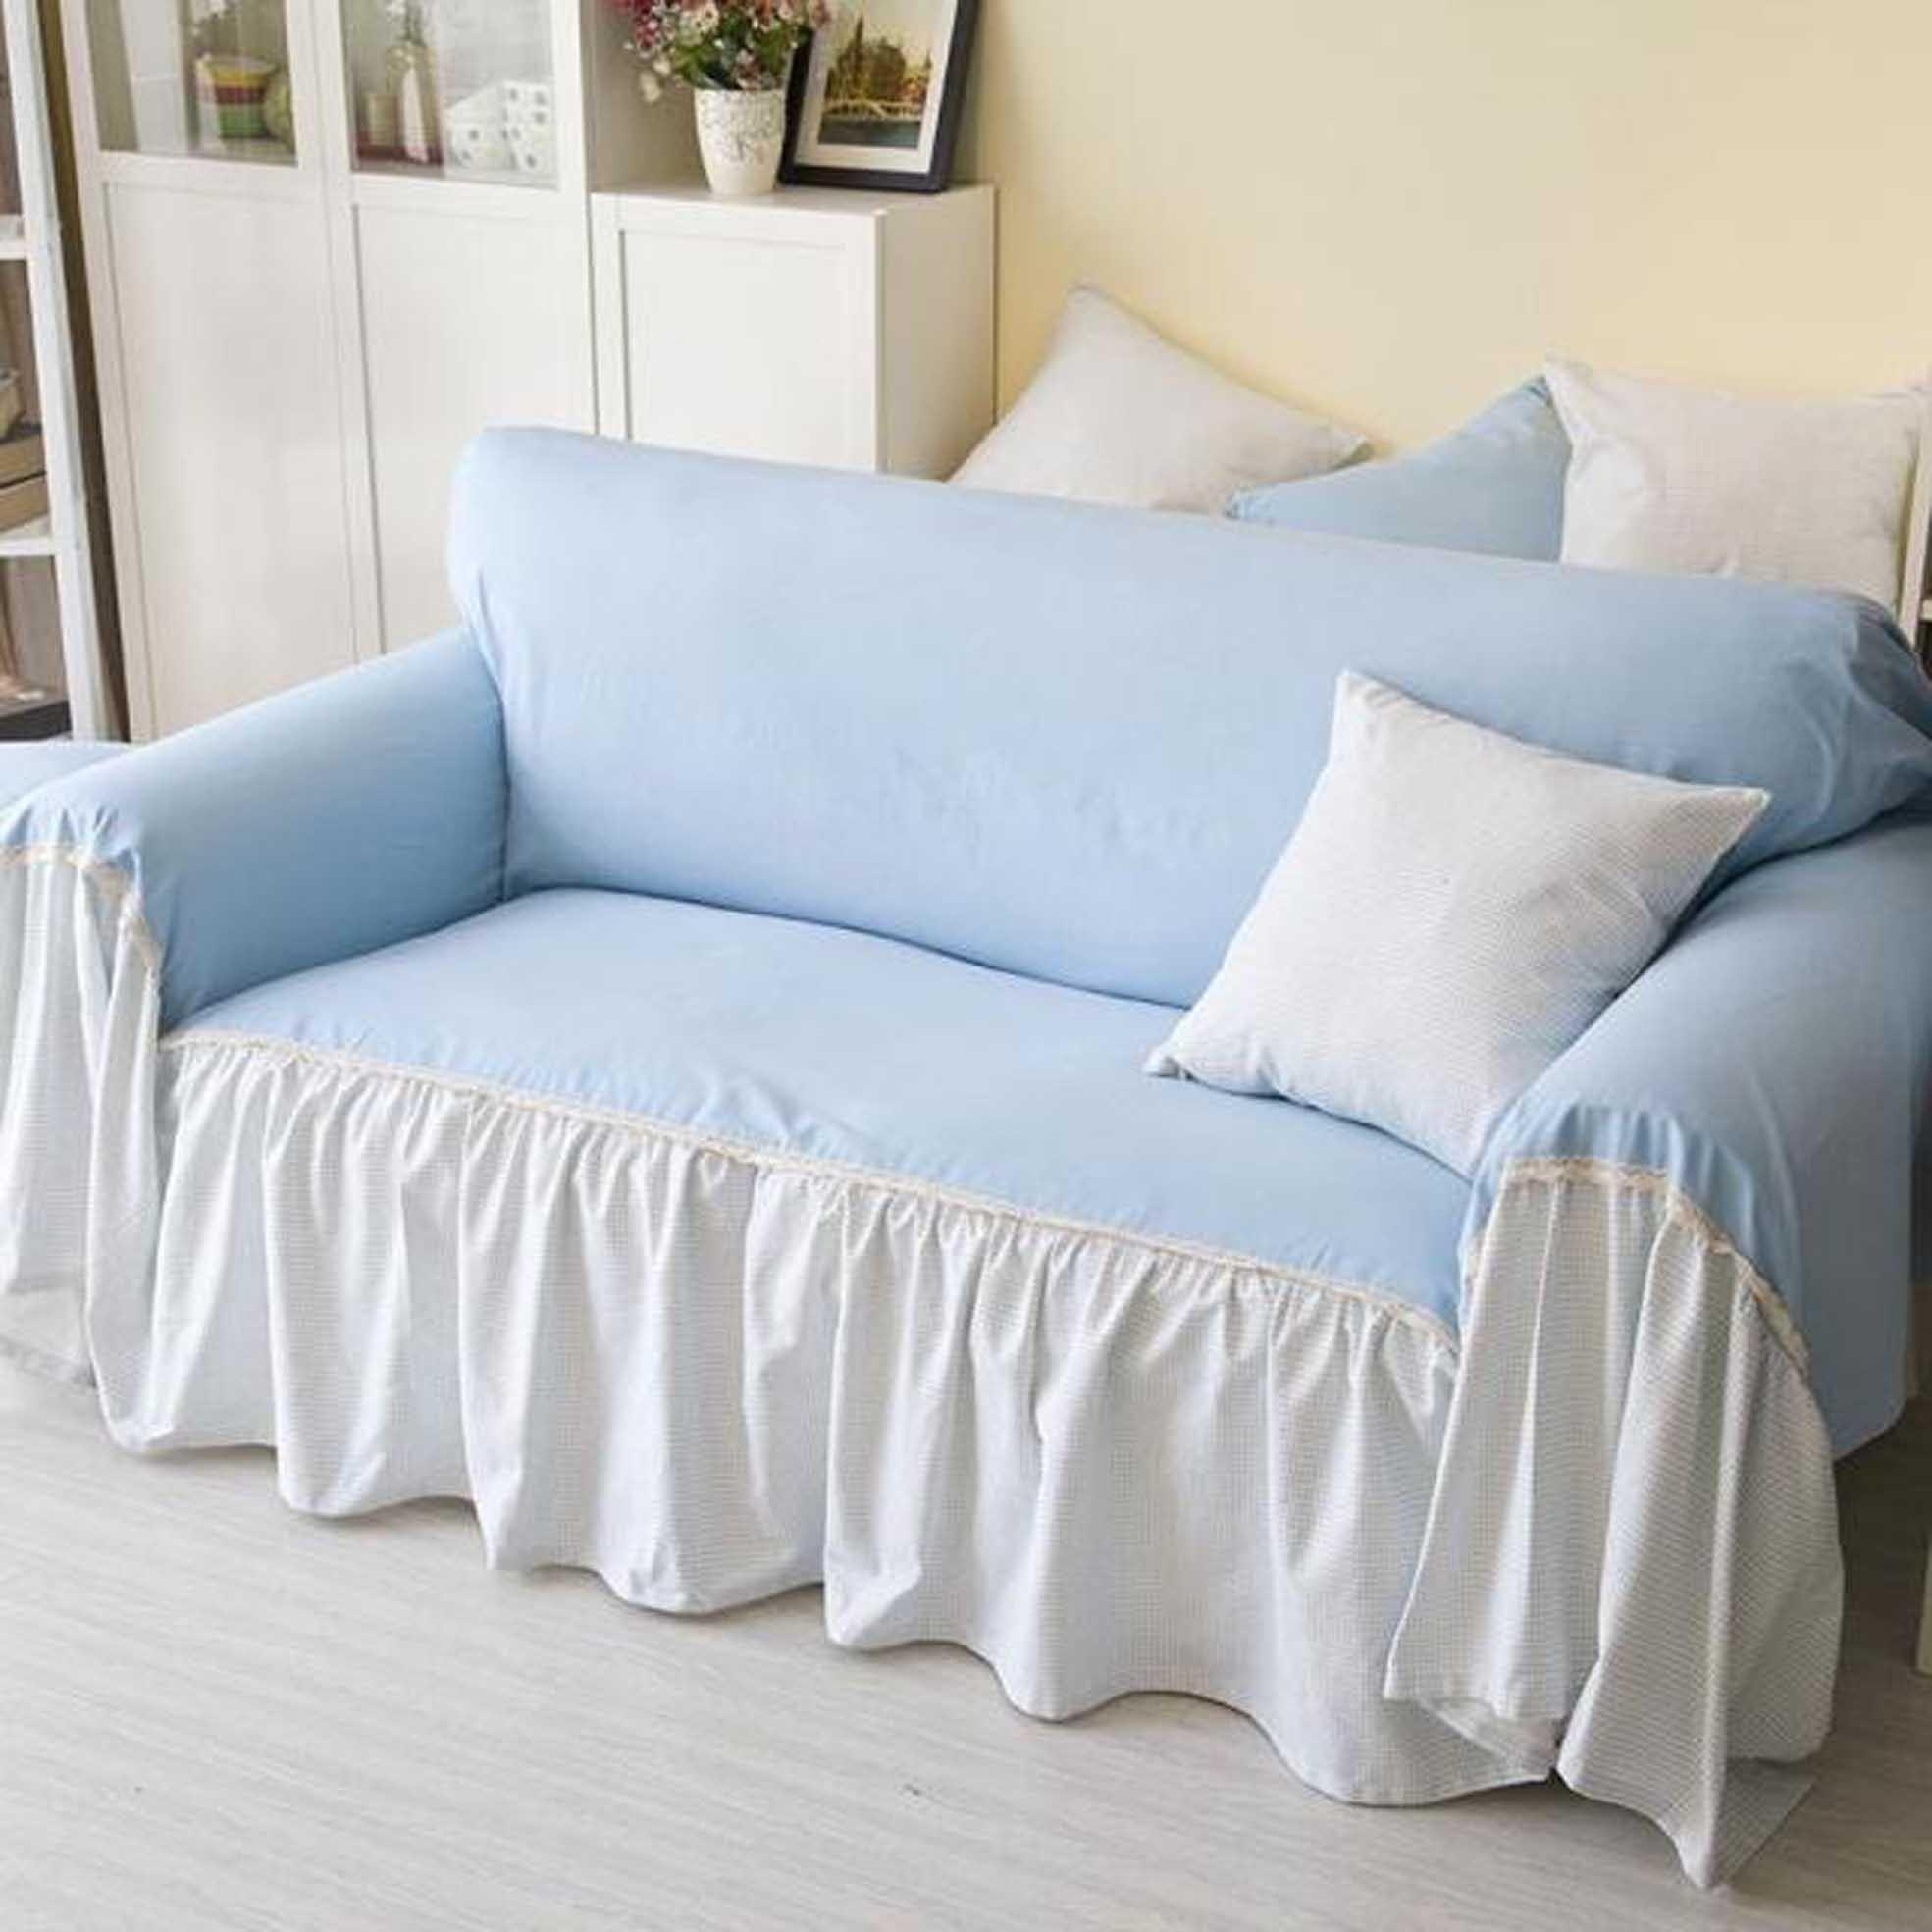 Navy Blue Sofa Slipcovers | Tehranmix Decoration With Regard To Navy Blue Slipcovers (Image 12 of 20)